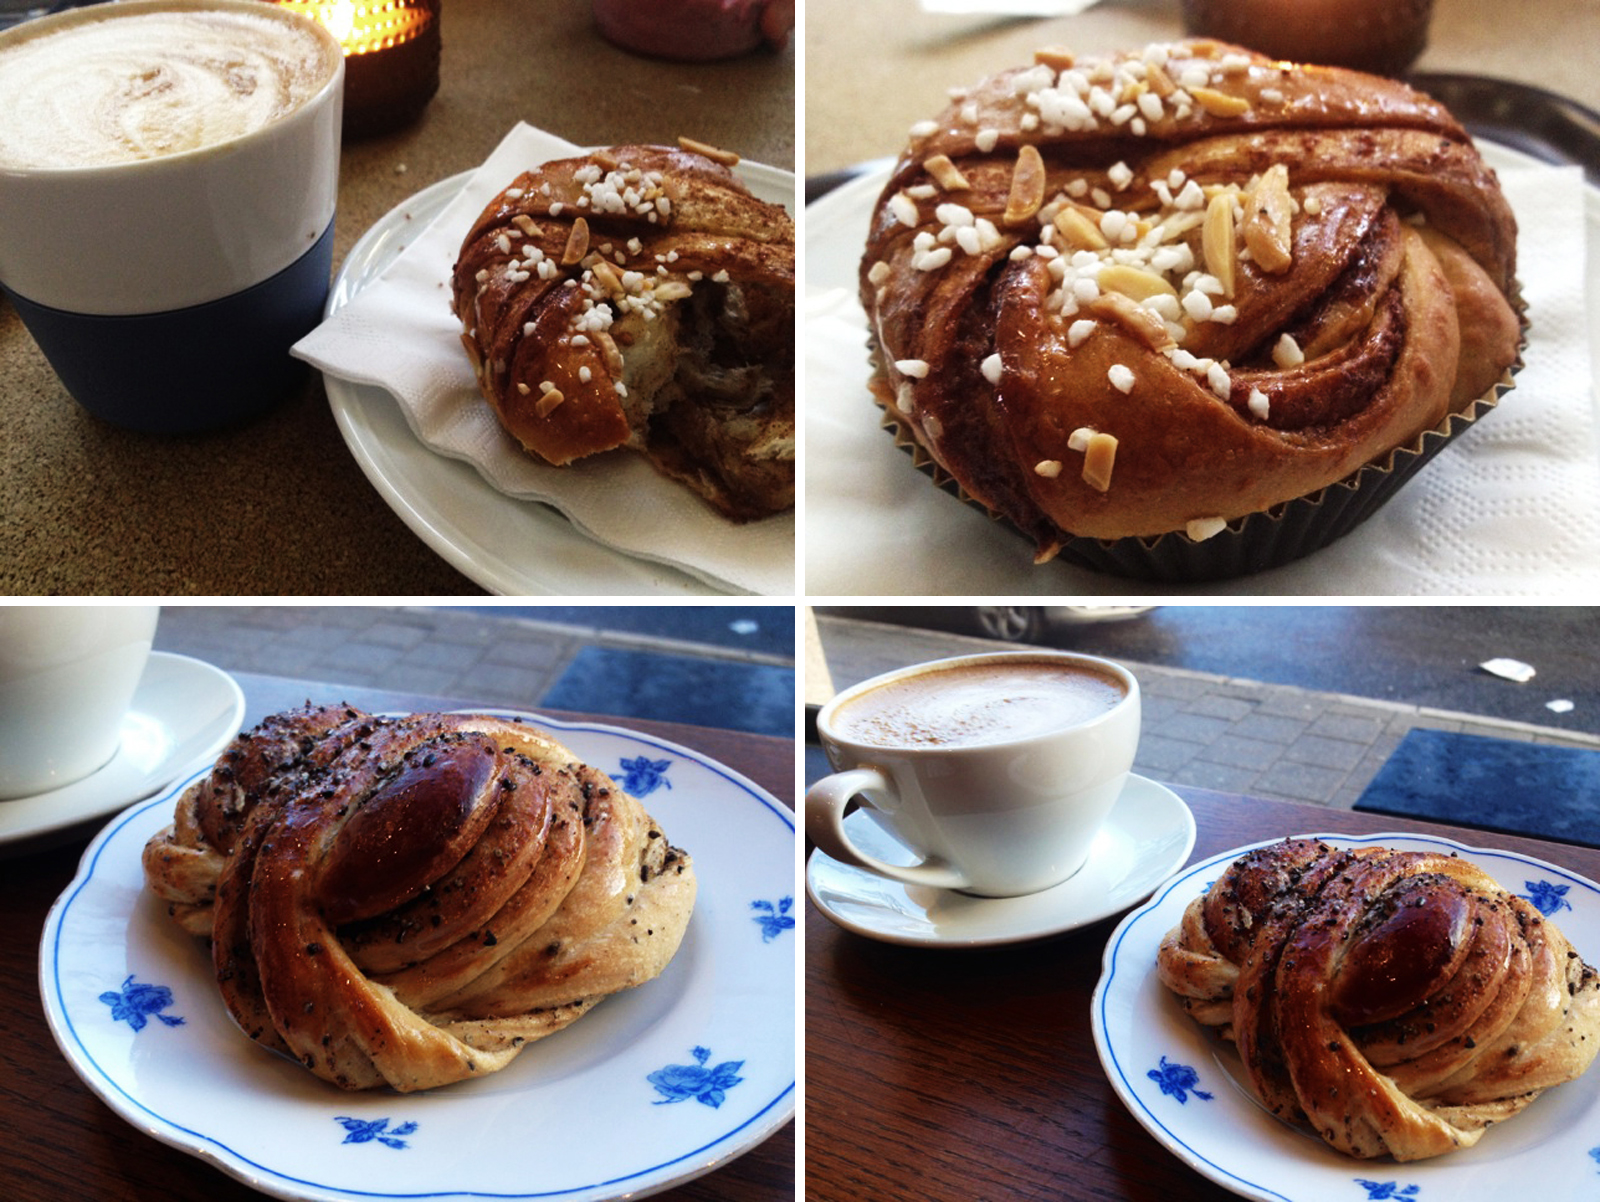 Flights-and-Feasts-Stockholm-Buns-002